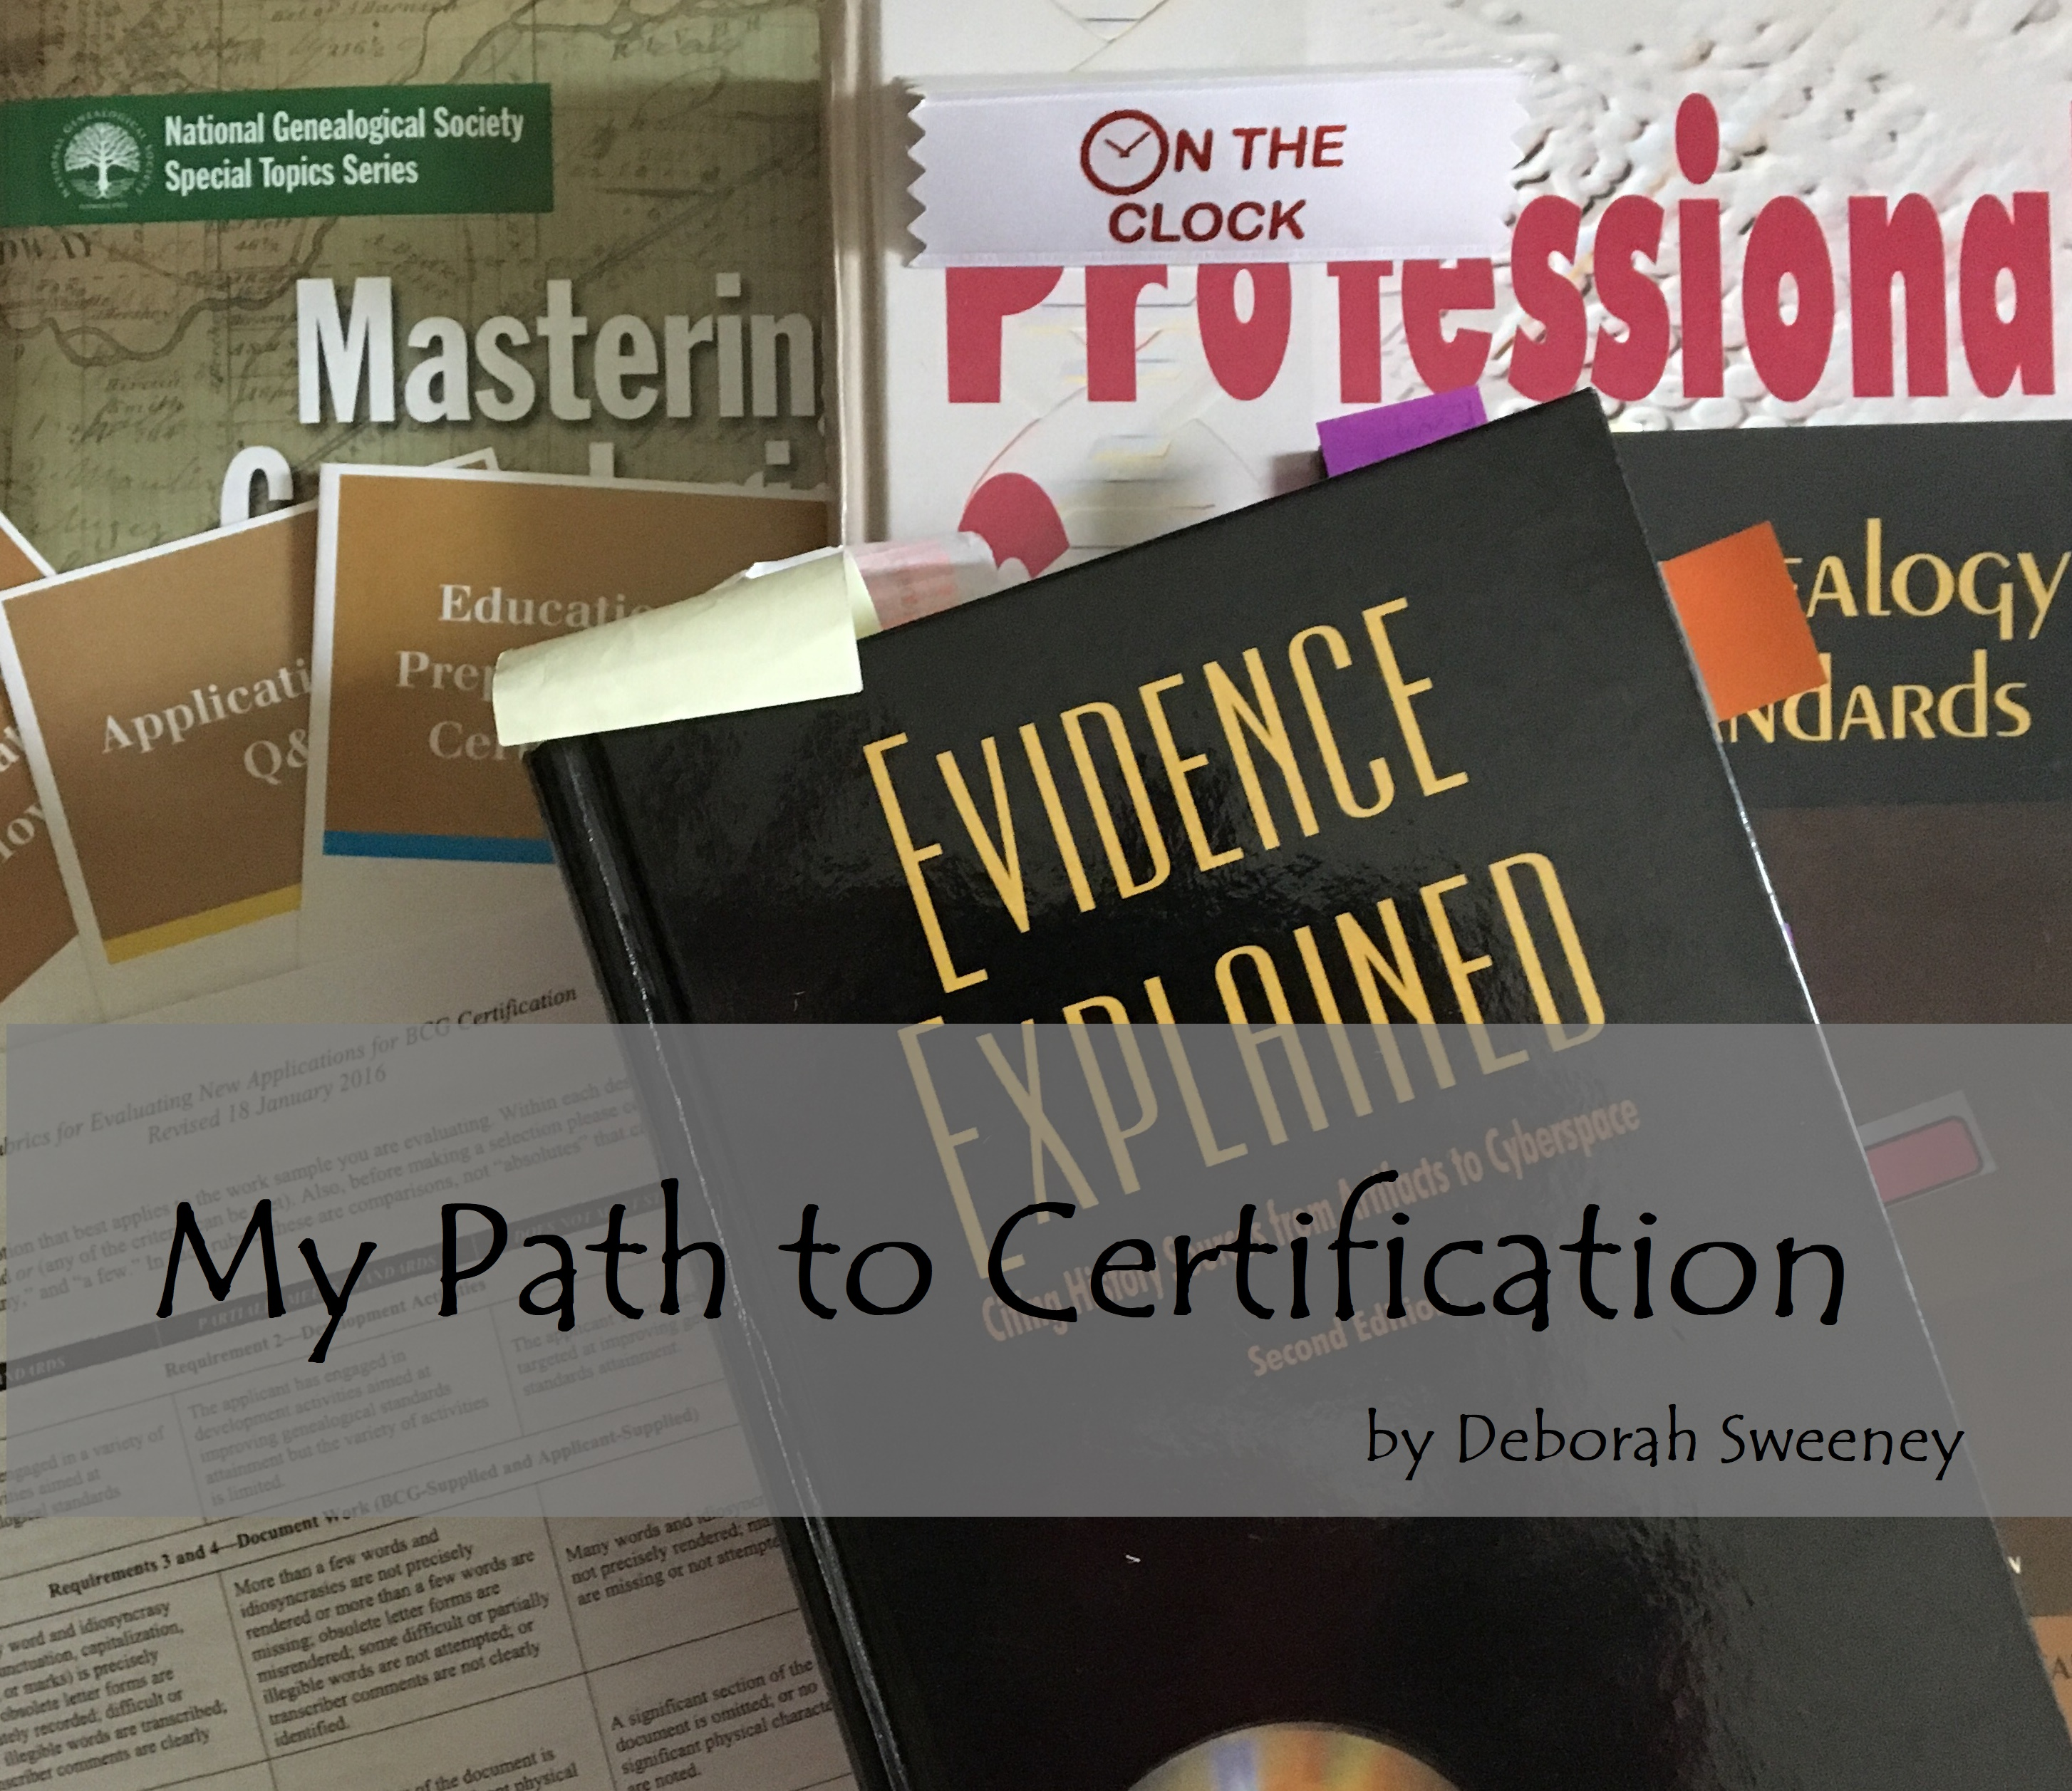 My path to certification issue no 8 genealogy lady happy new year i have decided to skip the year in reviewnew goals post this year my priority this year is to work on my bcg portfolio 1betcityfo Choice Image